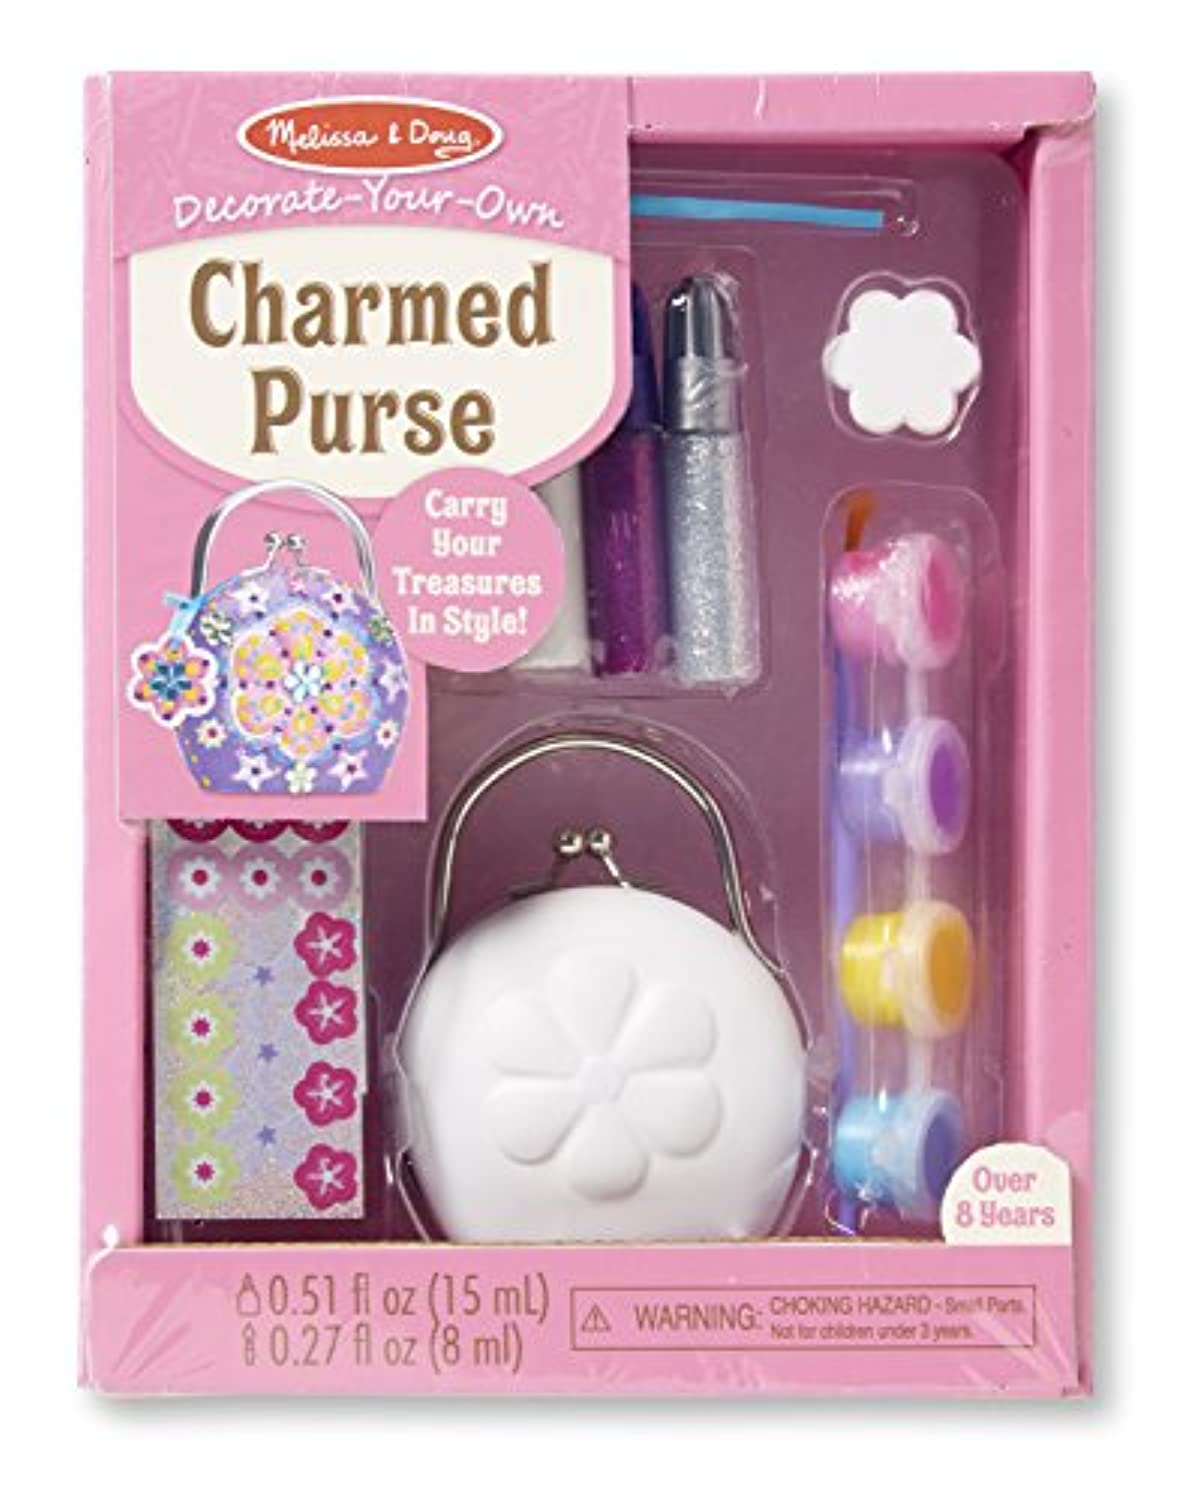 Melissa & Doug decorate-your-own Charmed Purseクラフトキット